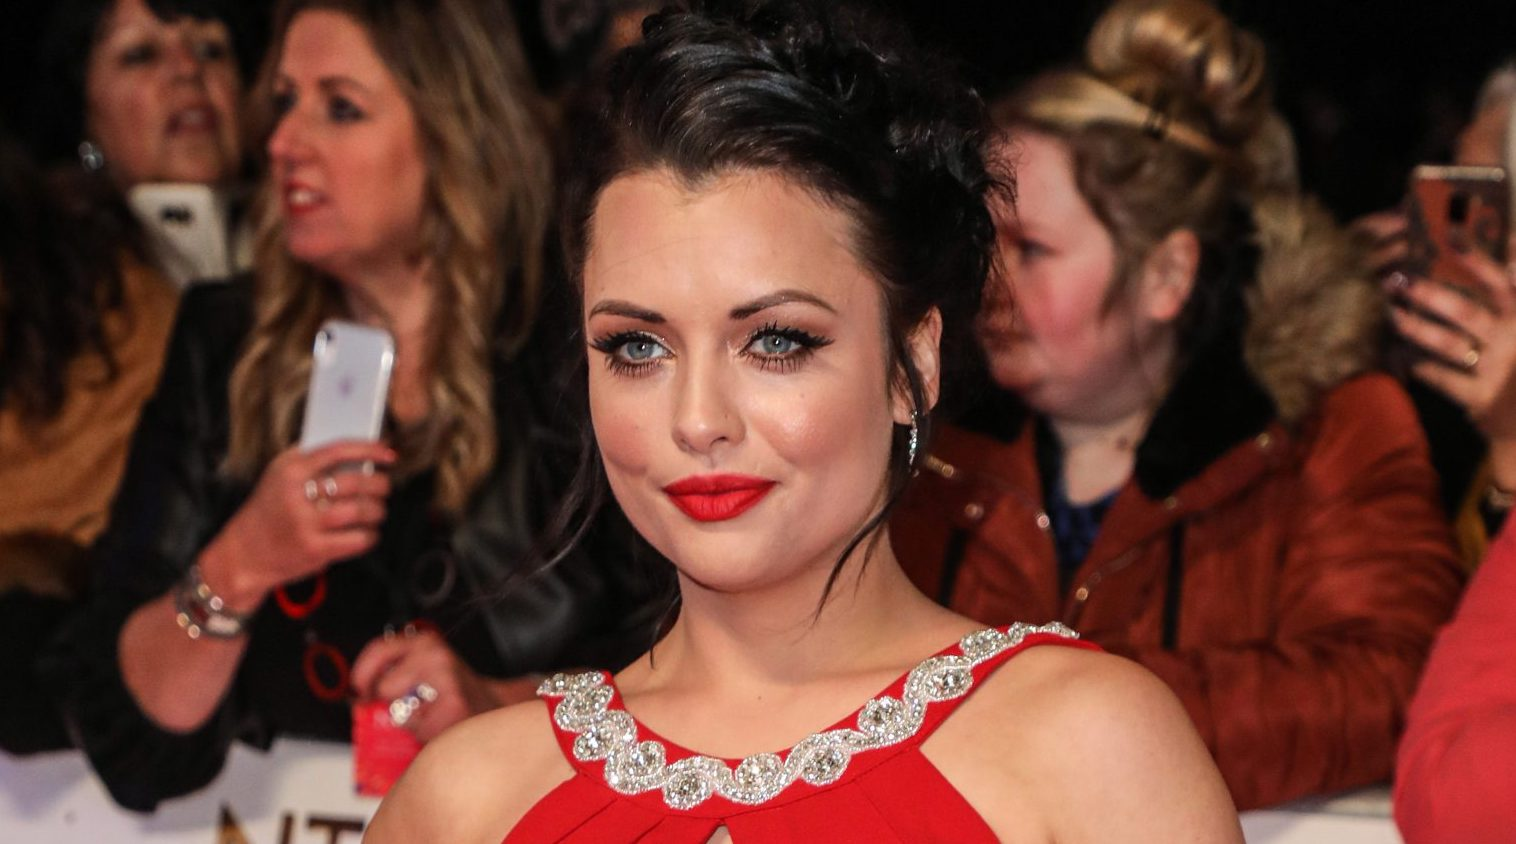 EastEnders' Shona McGarty sets sights on Hollywood a she reveals exciting new career plans